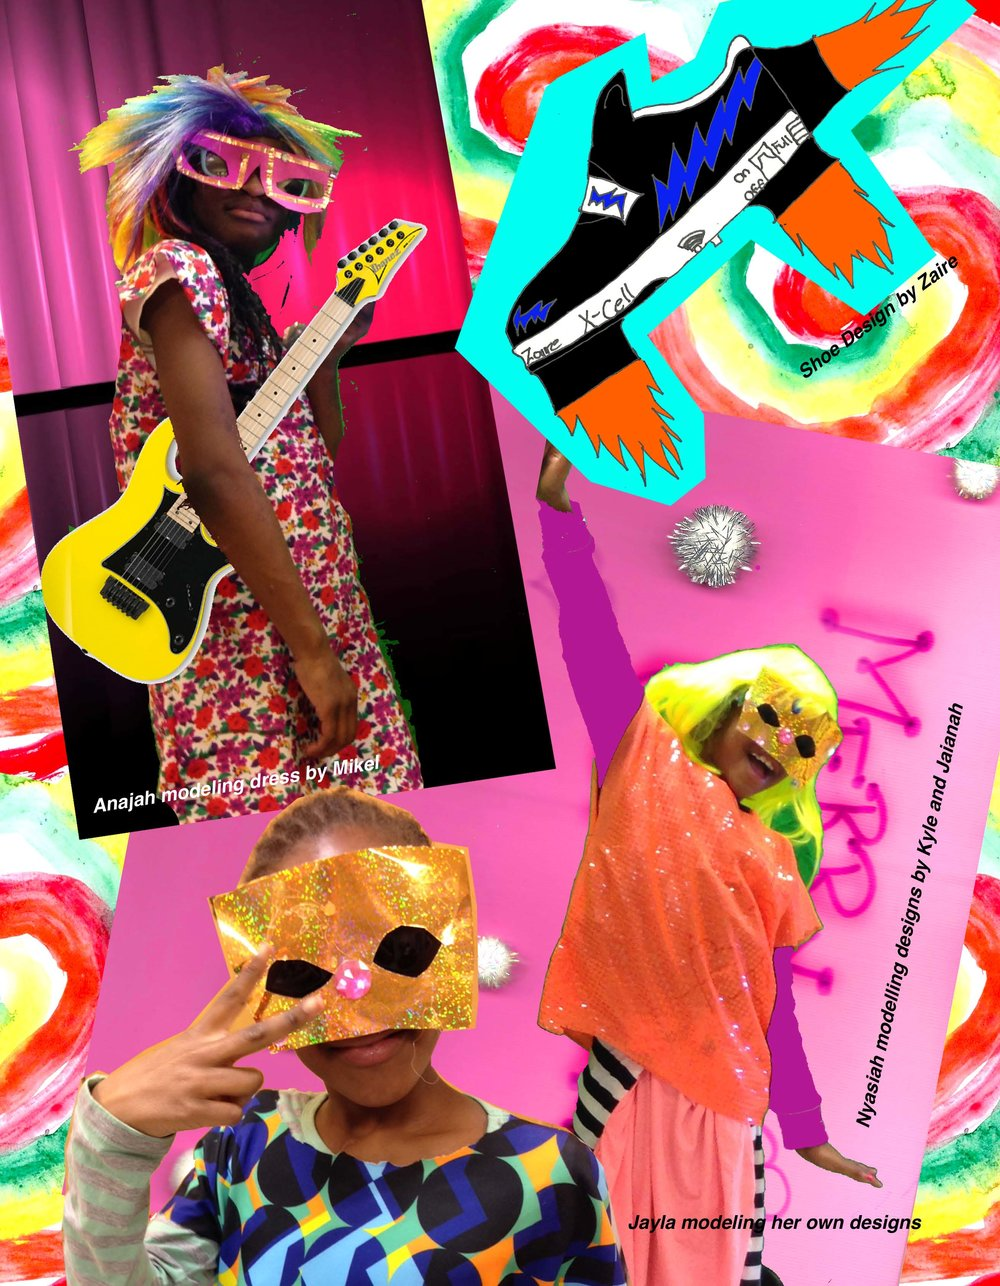 In 2016, the kids at Philly's Widener Library and I worked on a Futuristic Fashion Project. As part of that we made this magazine.